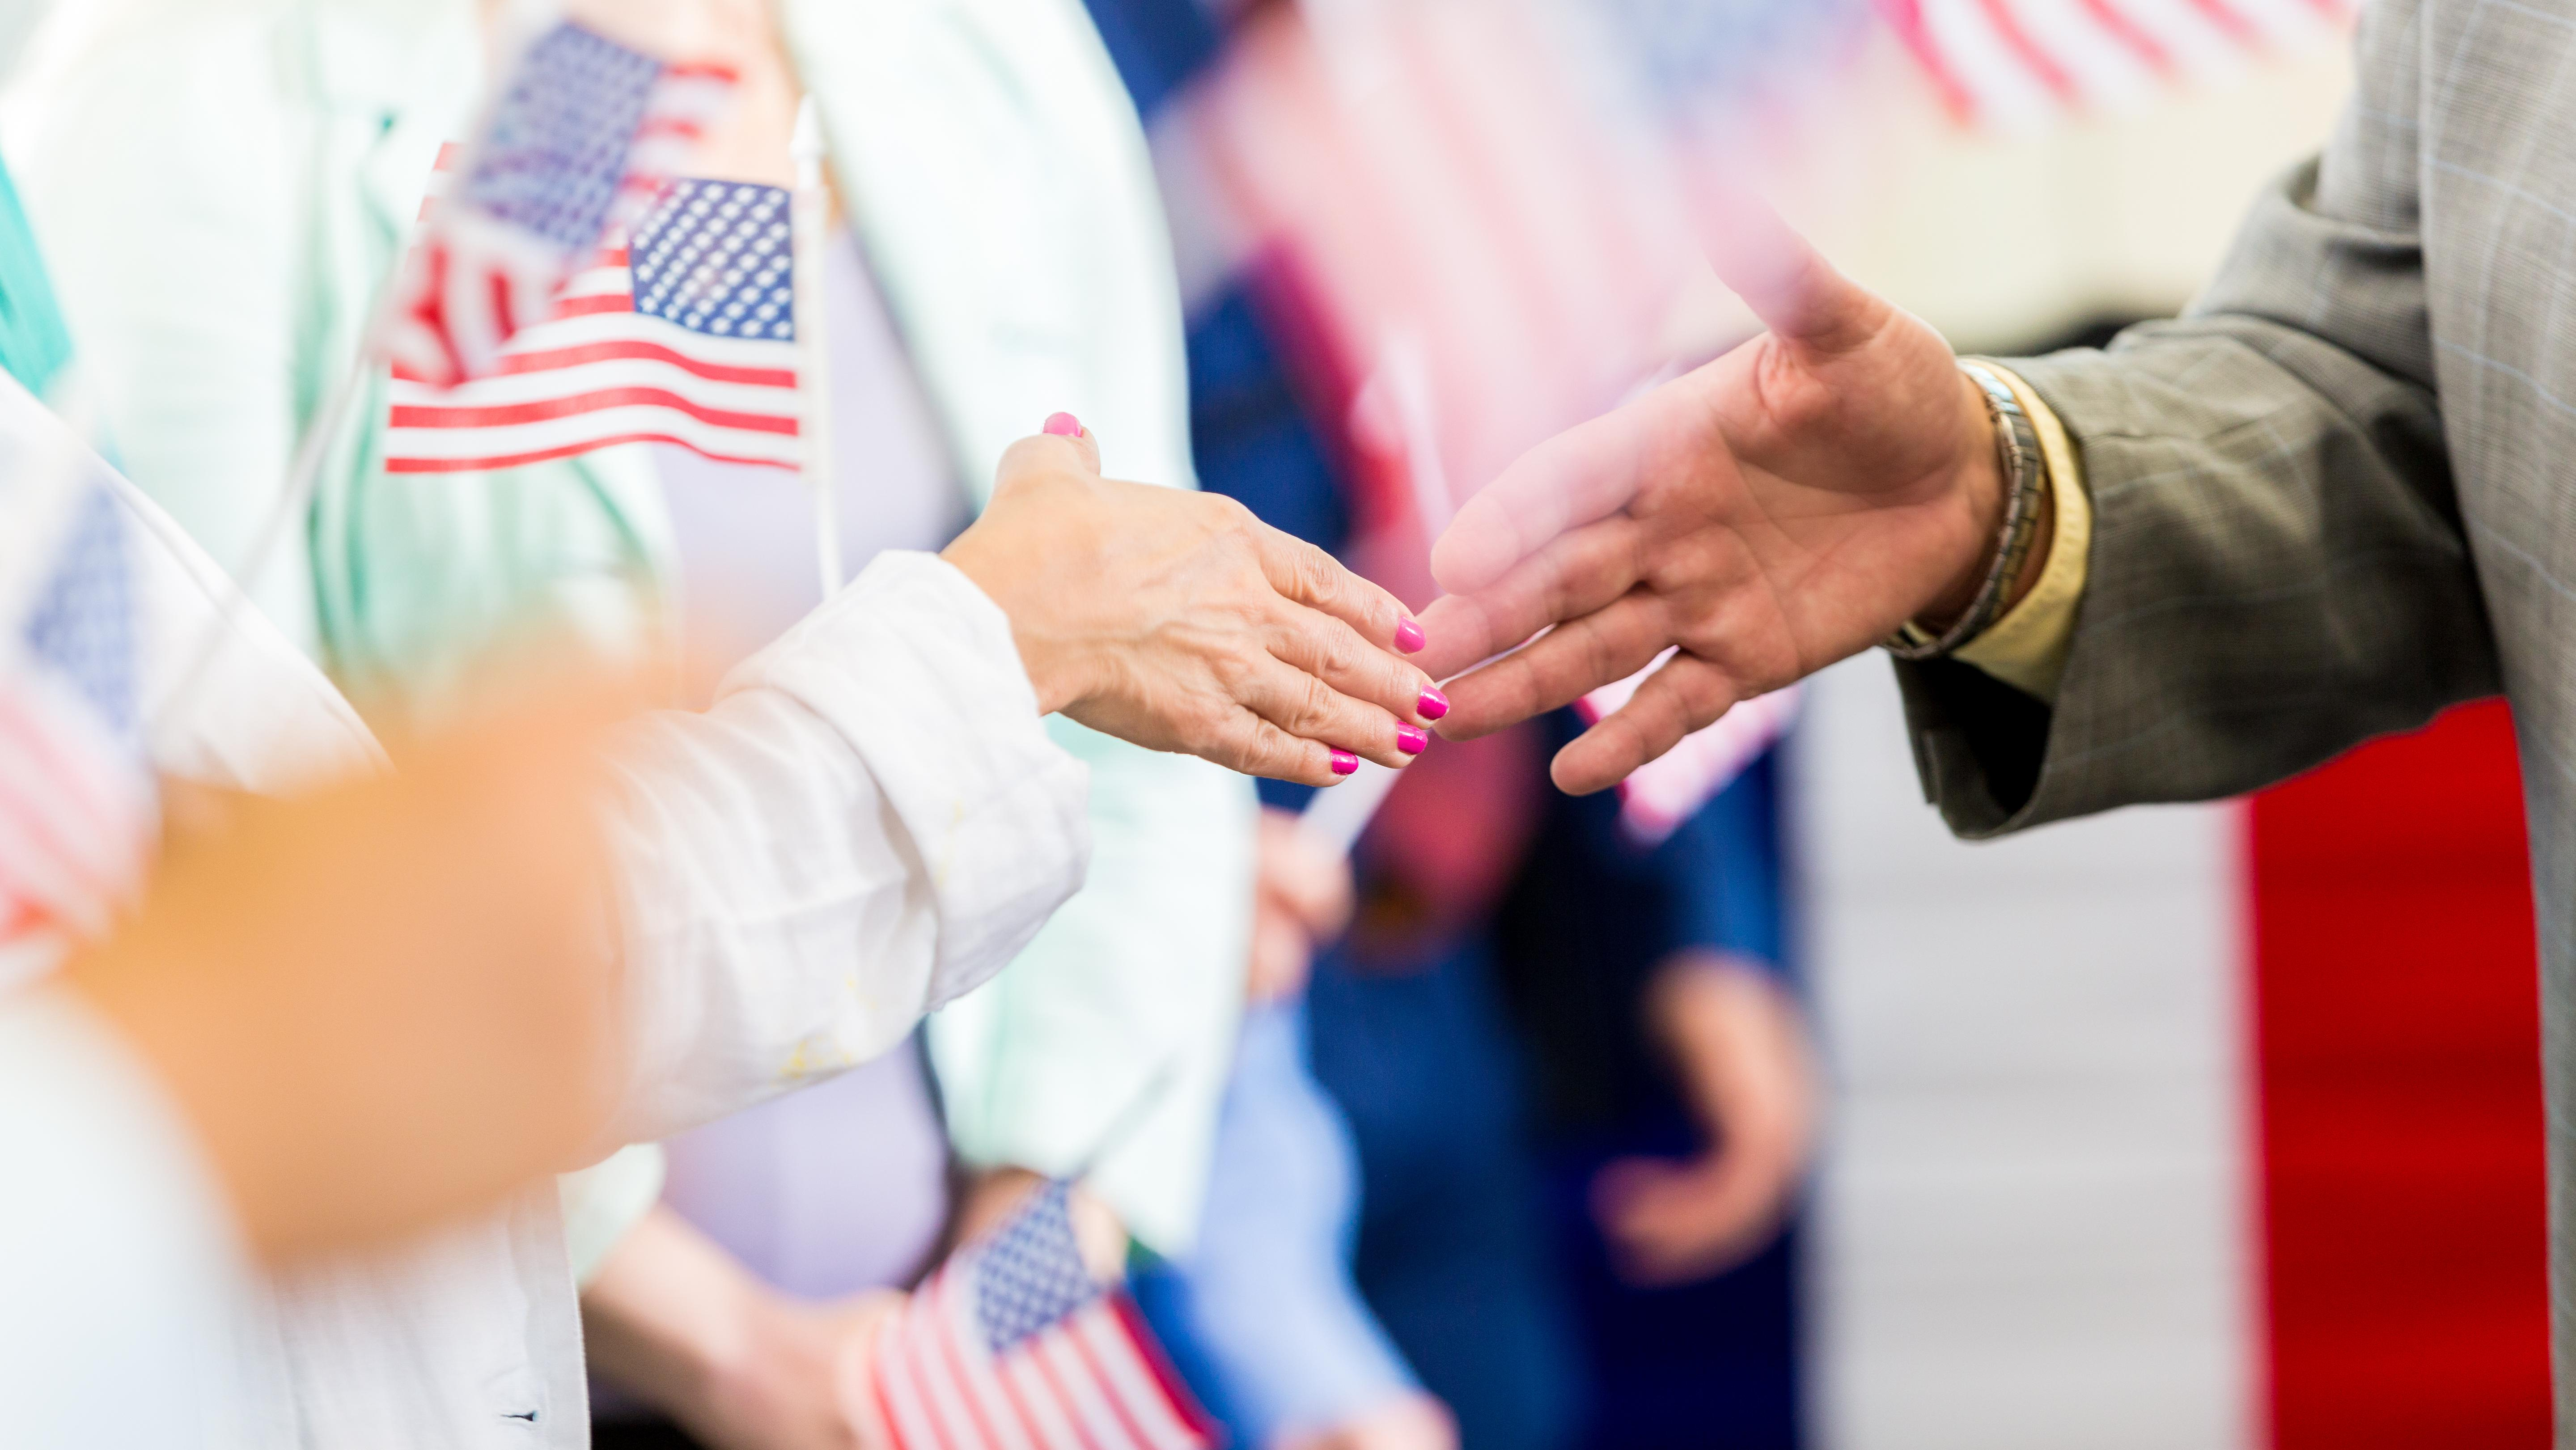 Handshake surrounded by American flags